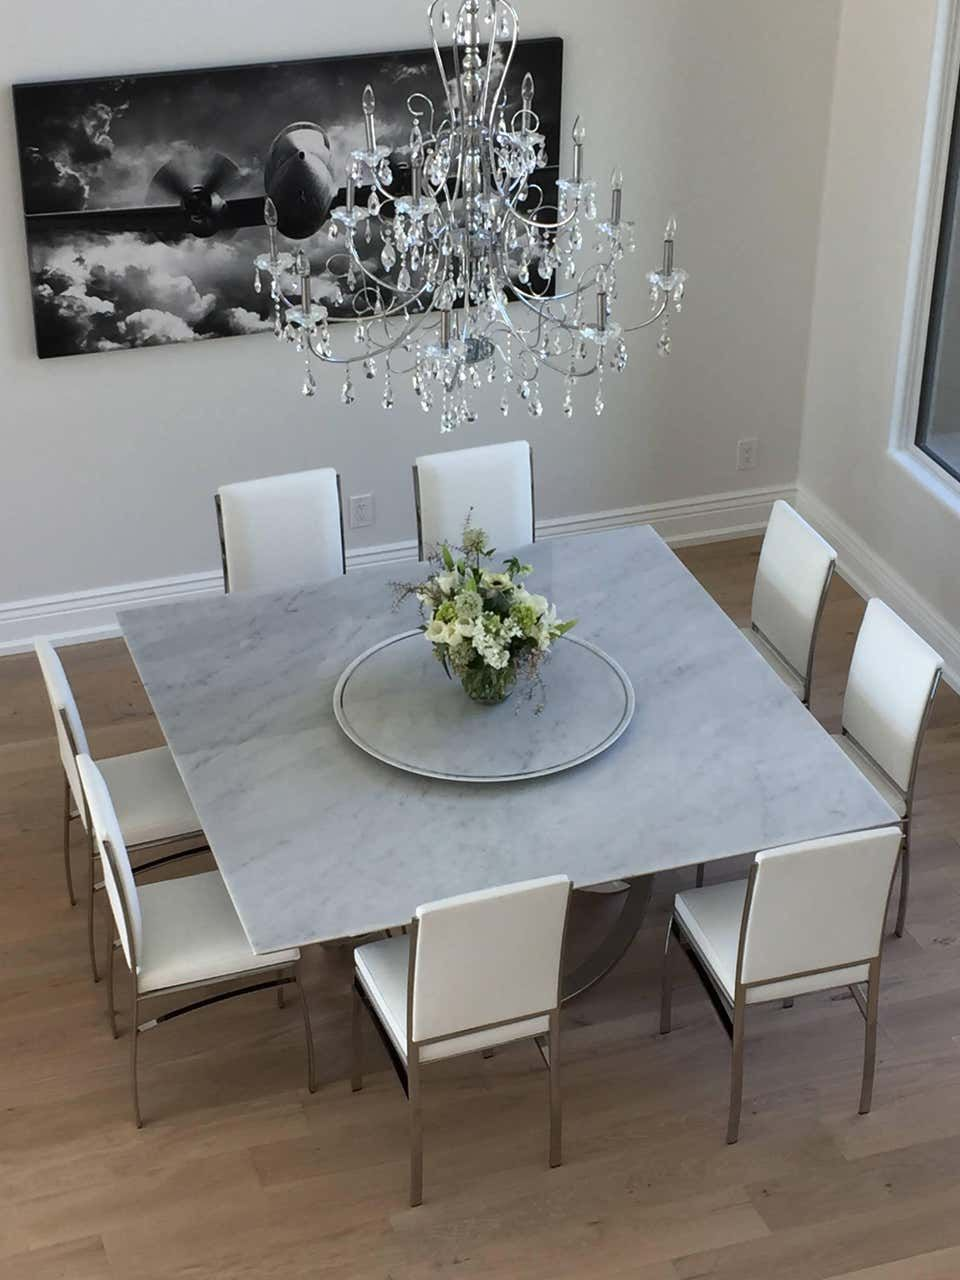 Dining Square Table White Marble Steel Italian Contemporary Design In 2021 Square Dining Room Table Square Dining Table Designs Dining Table Marble